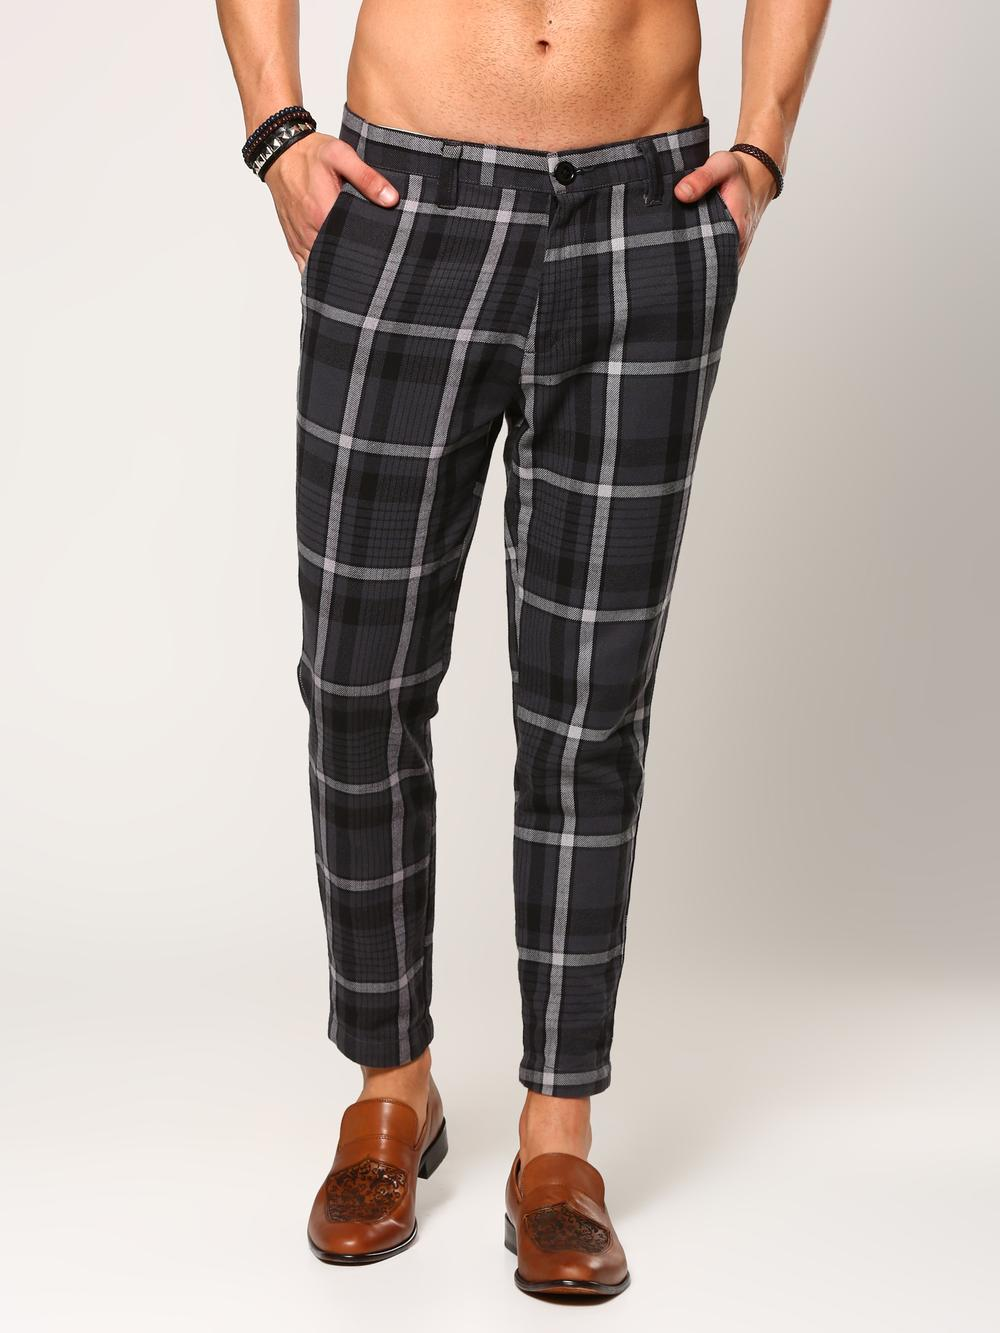 bdada6974a0 Product Image. Product Image. Product Image. Product Image. Product Image.  Product Image. 35% OFF. abof Men Grey Checkered Slim Fit Casual Pants